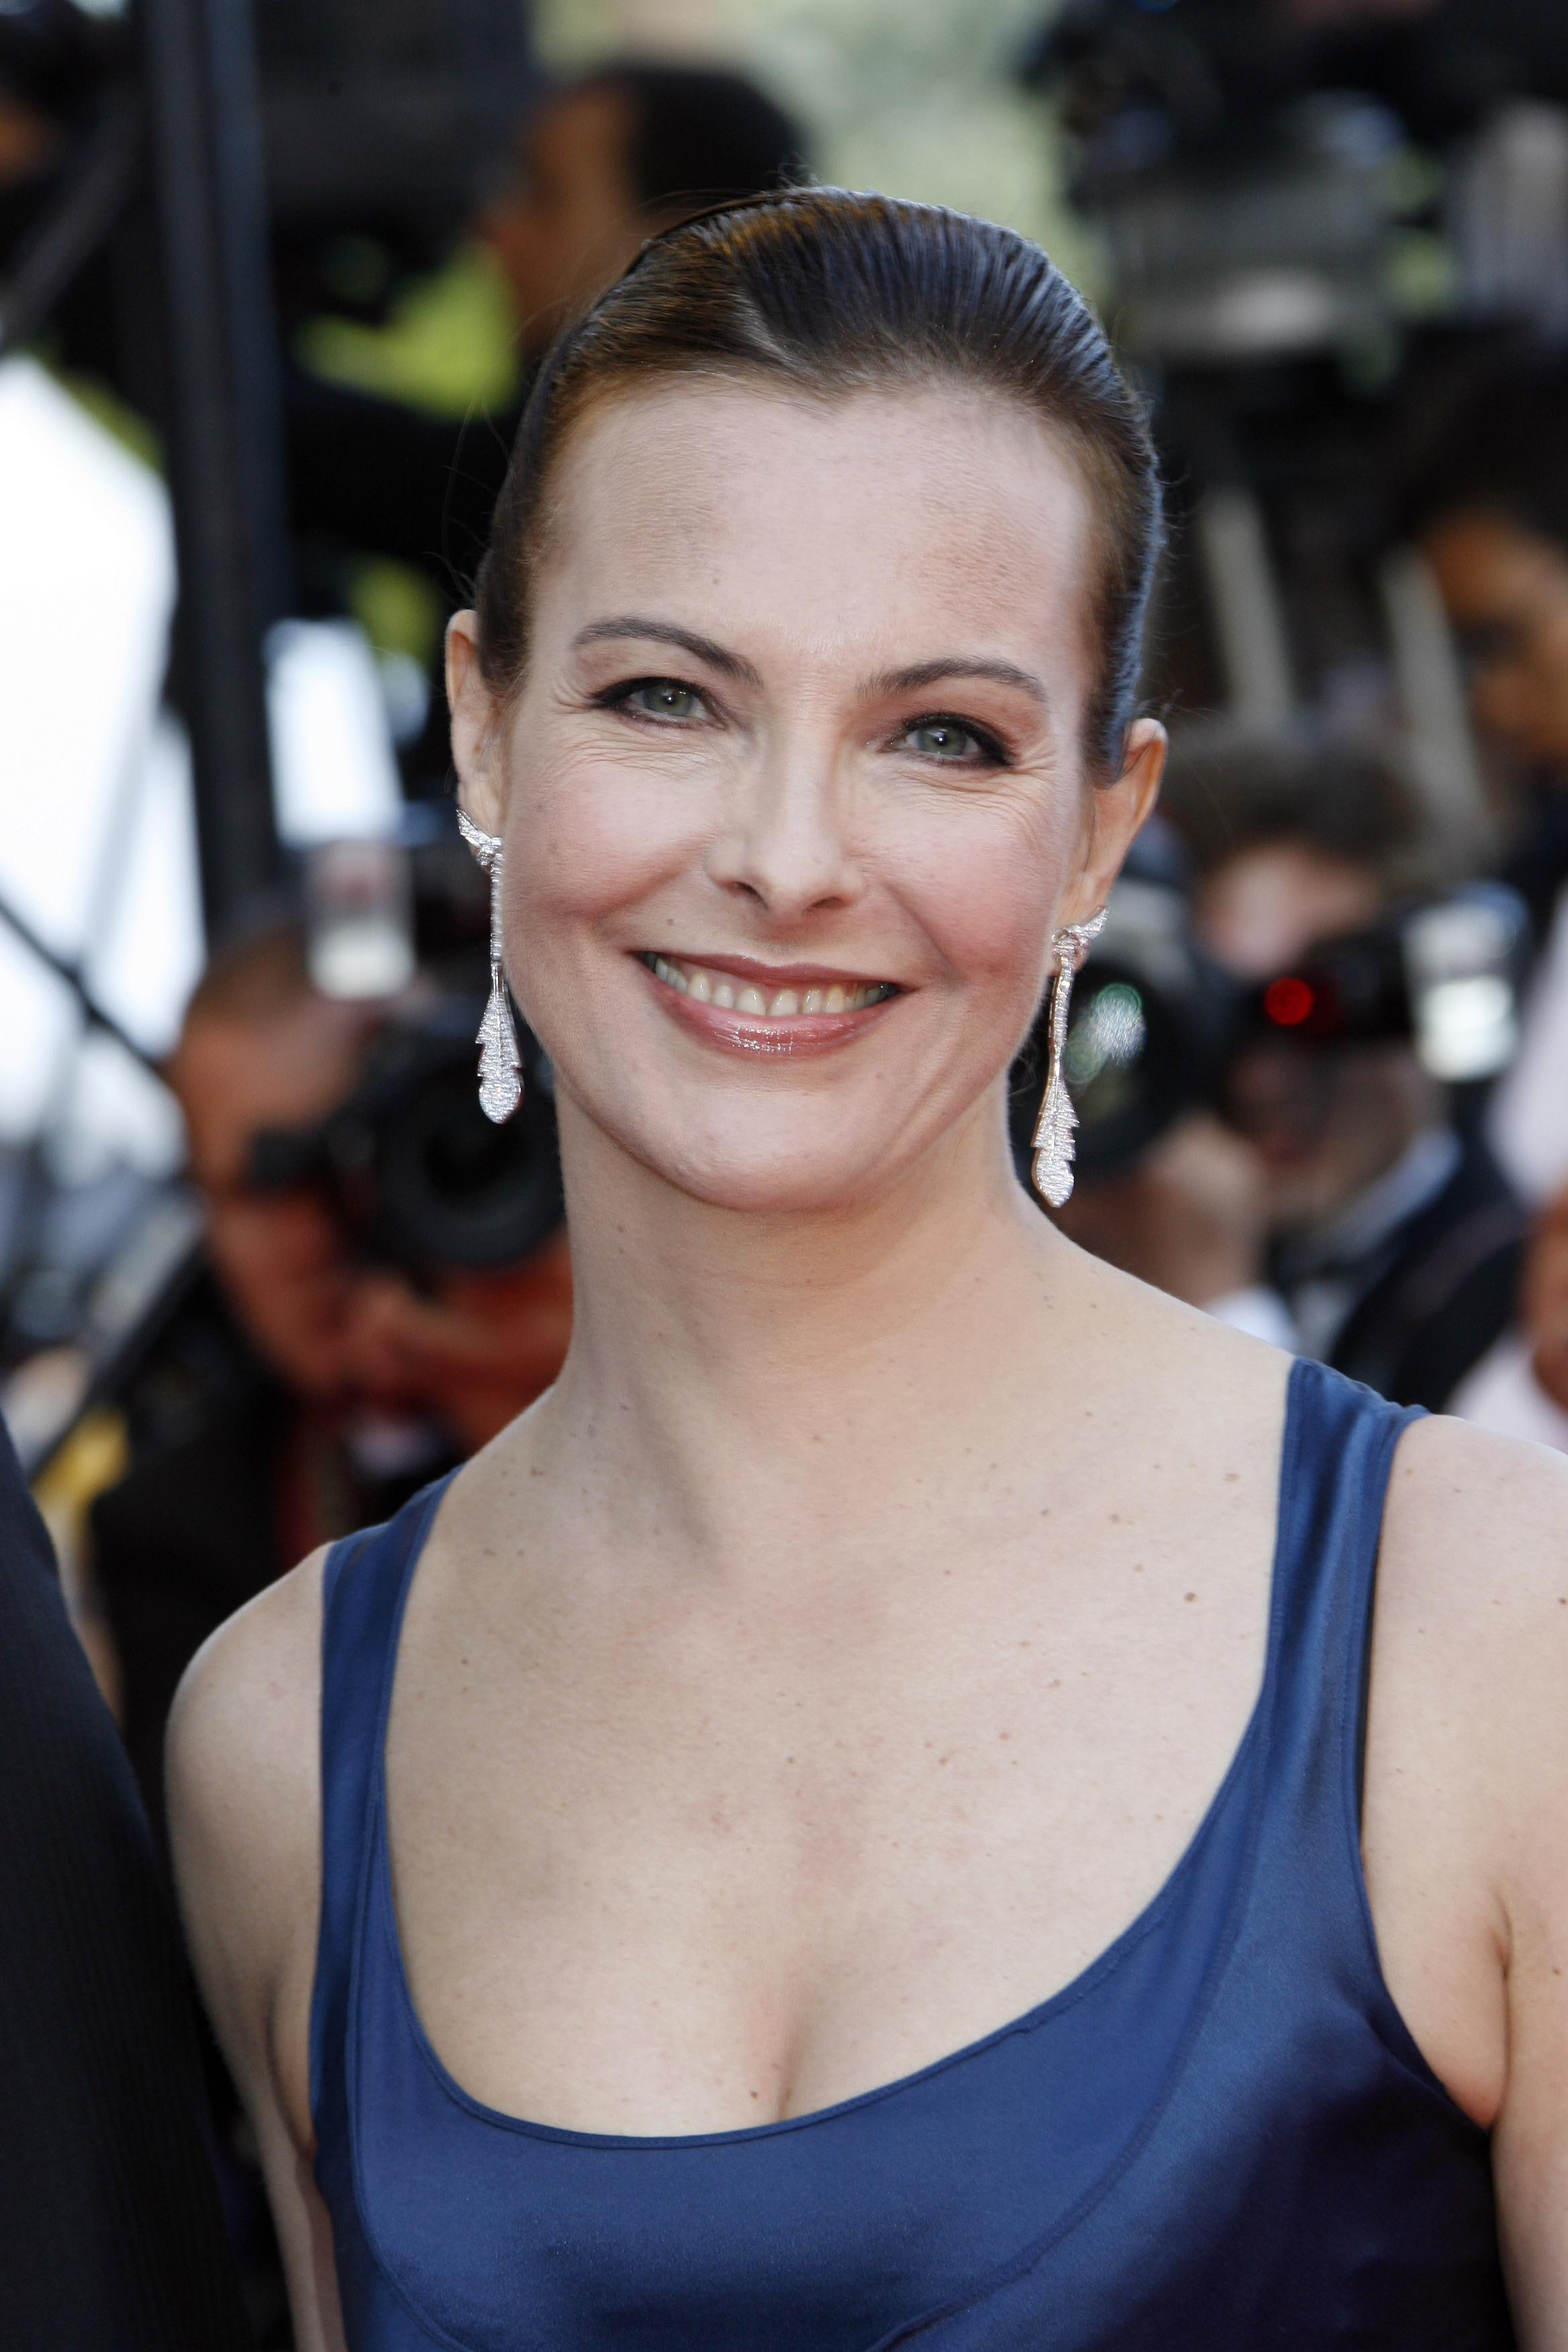 Poze Carole Bouquet - Actor - Poza 5 din 50 - CineMagia.ro Kim Cattrall Now